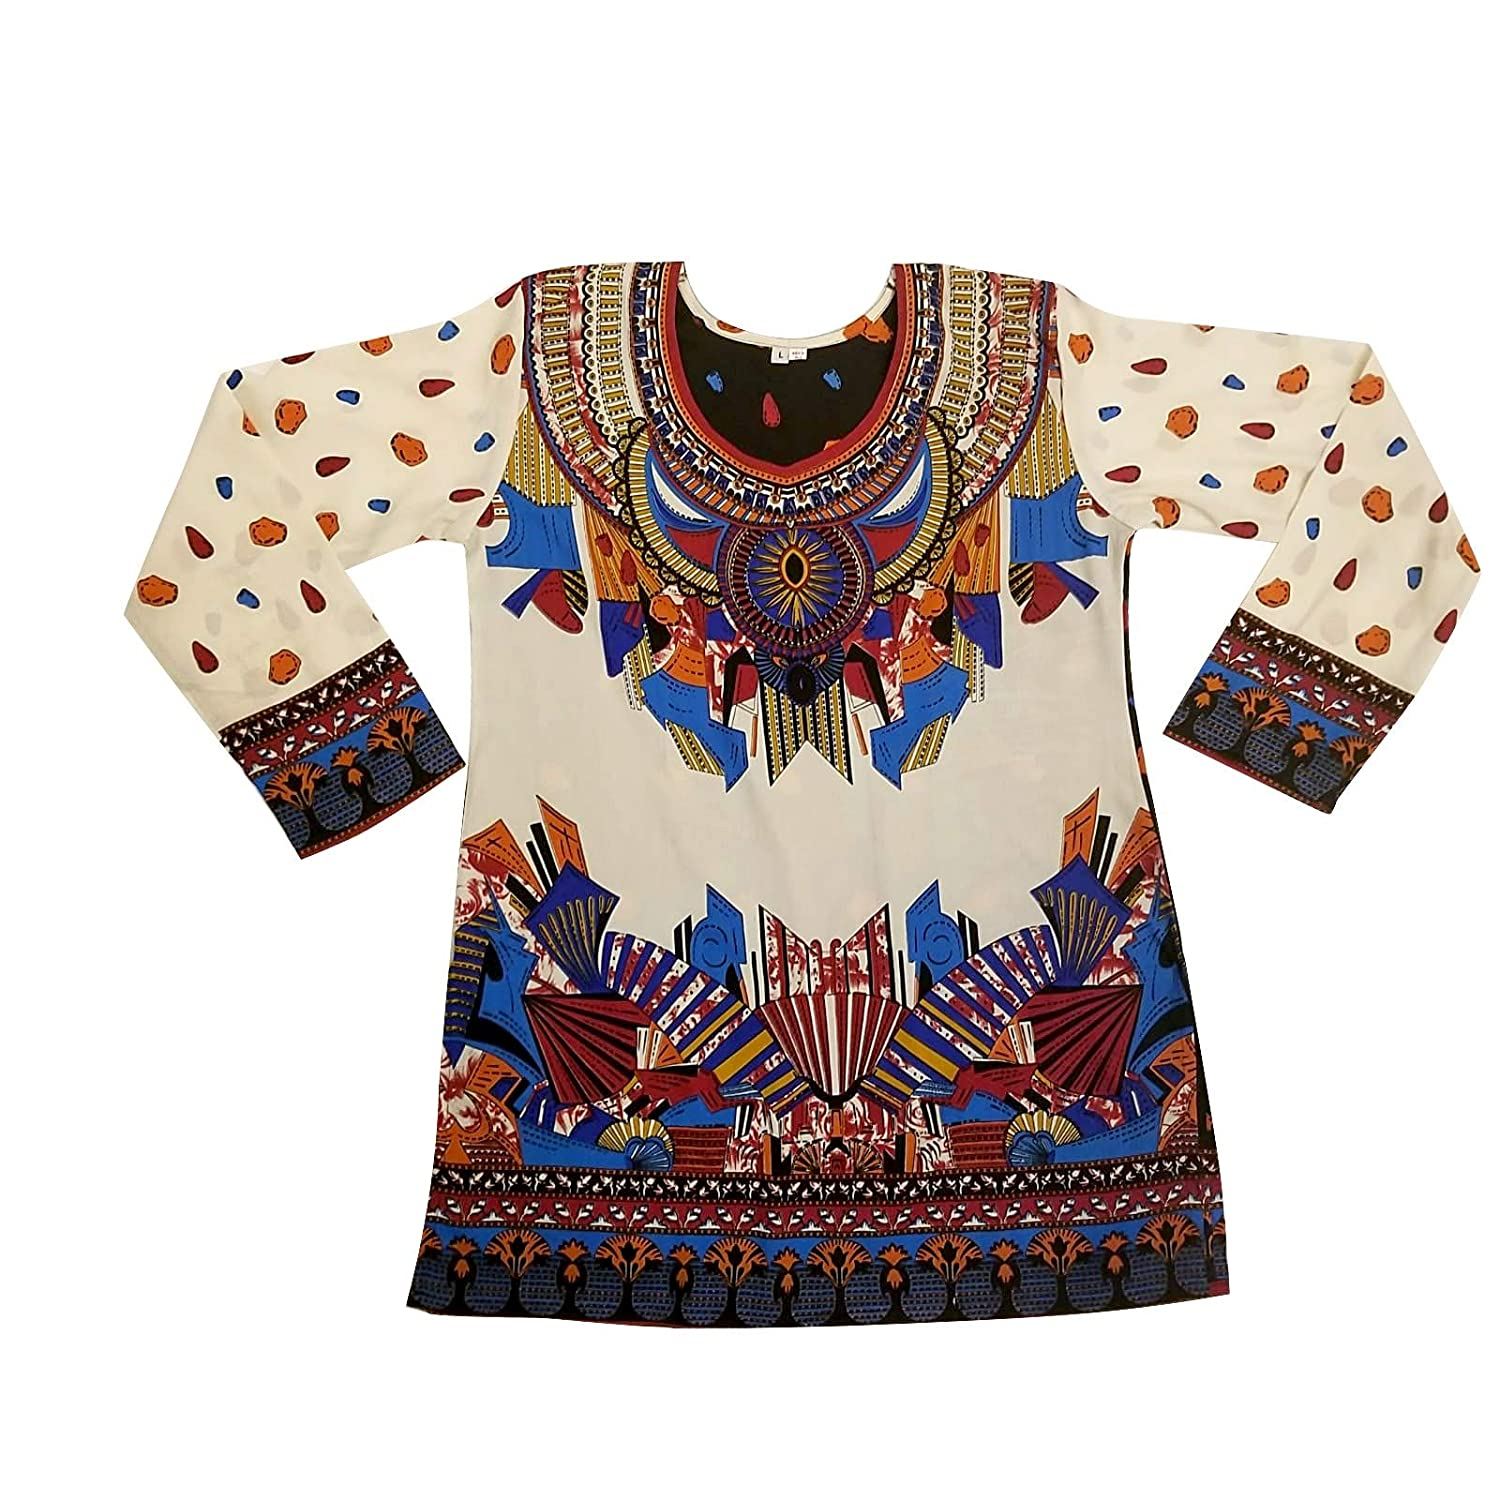 44910f6c3 BombayFashions Indian Tunic Top Womens Kurti Printed Blouse India Clothing  at Amazon Women's Clothing store: